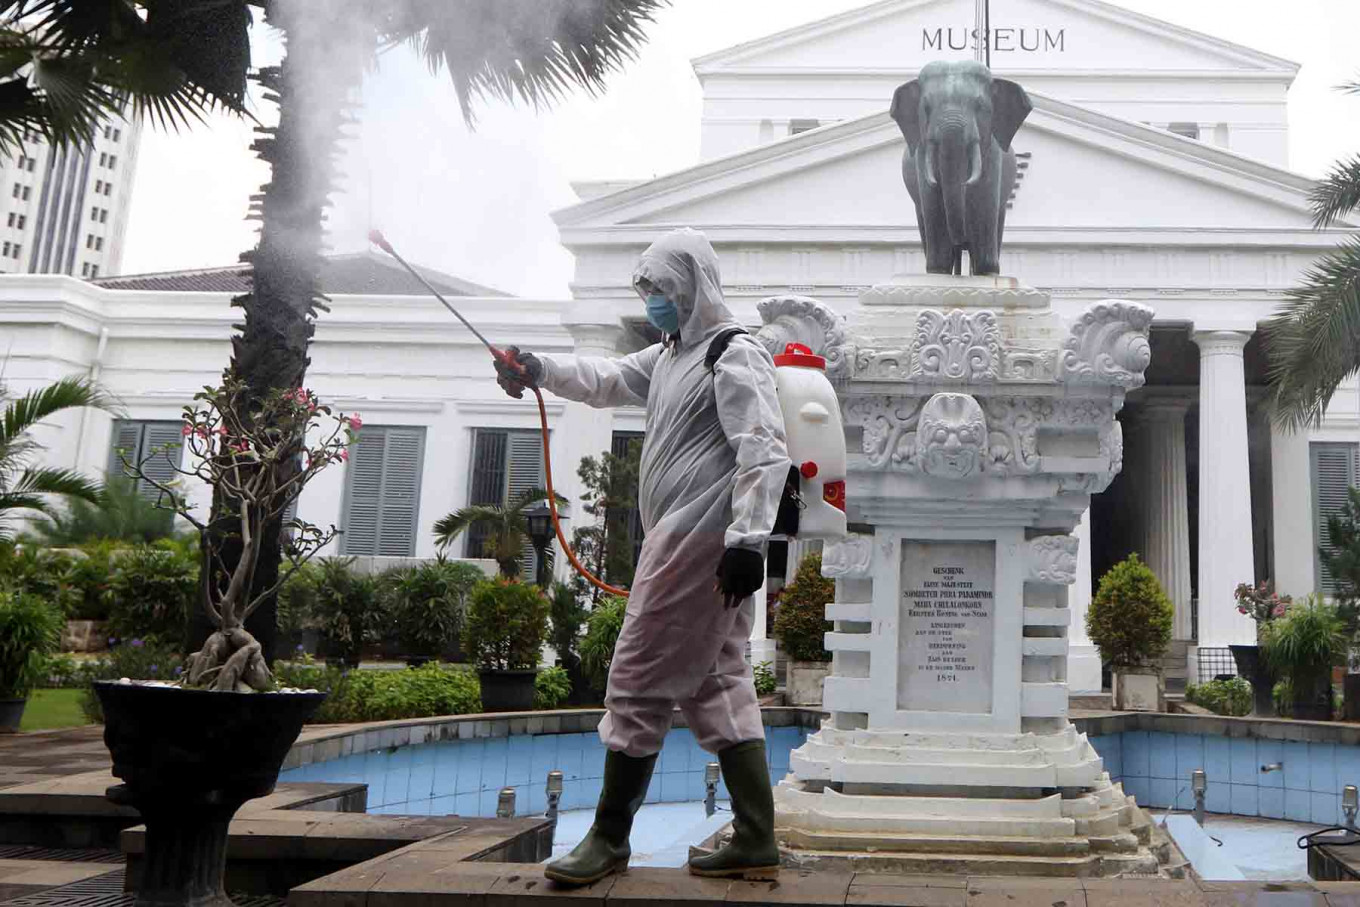 Museums slowly back in business as Jakarta eases restrictions